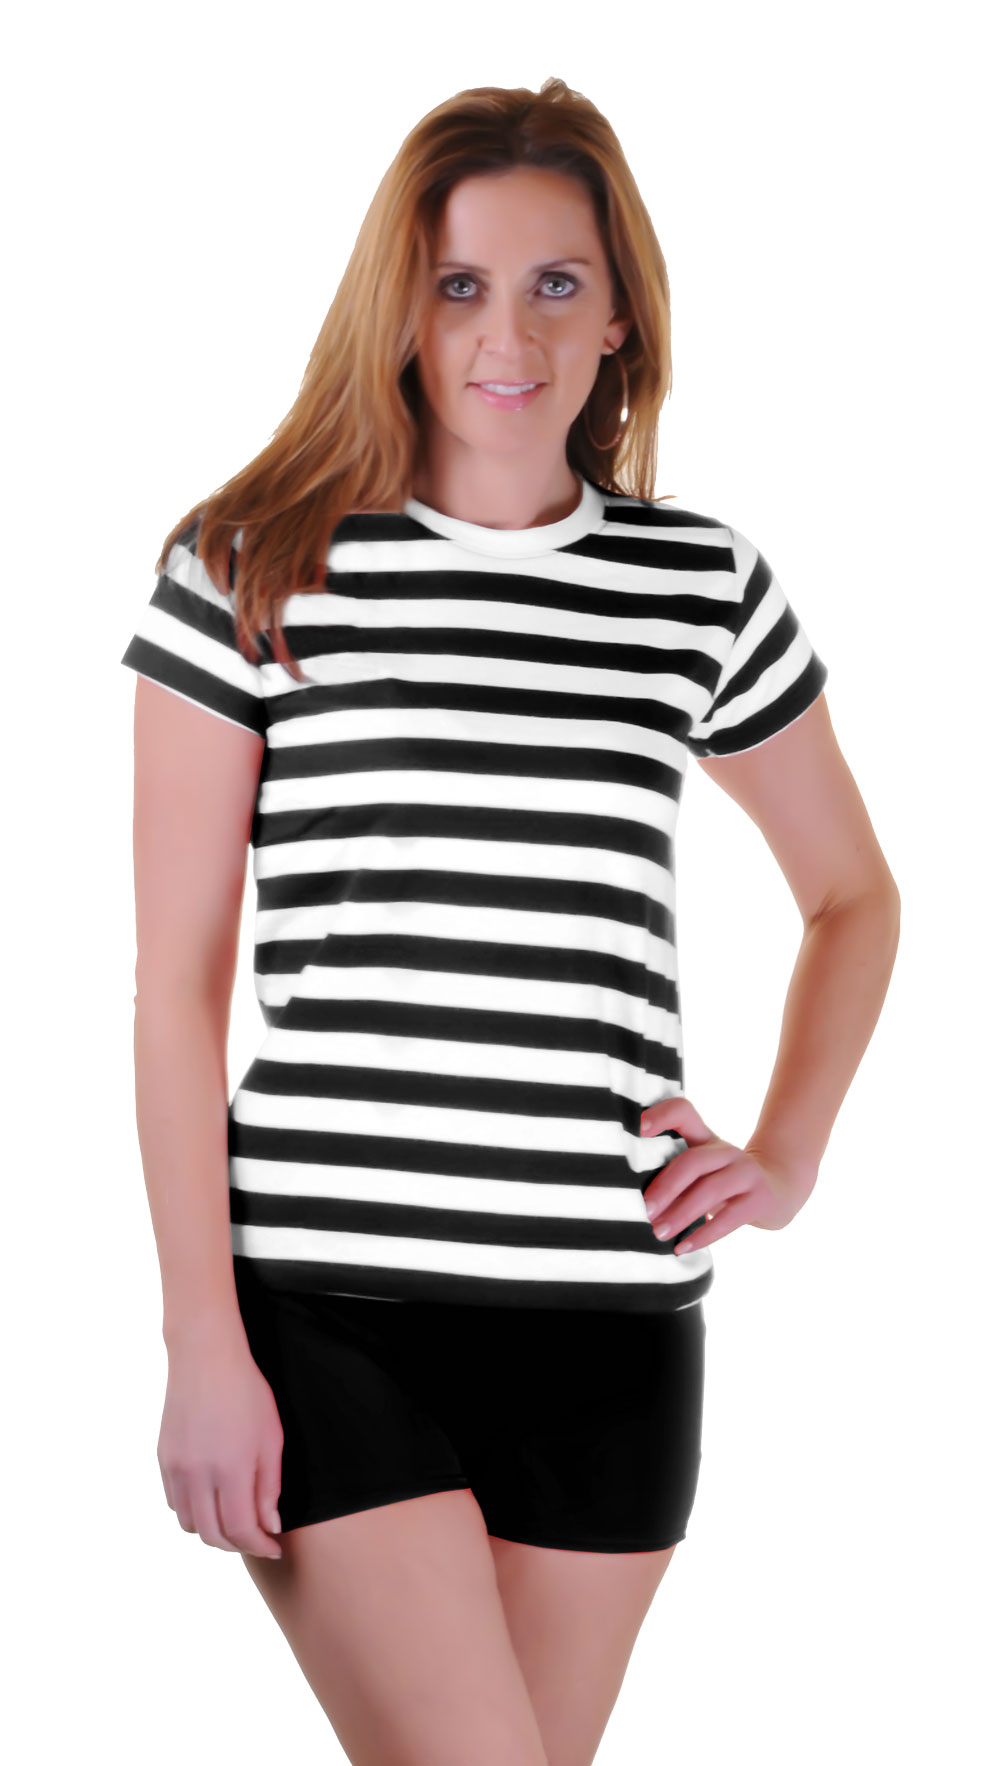 Hypernation Mix And Match Black And White Striped With Plain Black 3/4th Sleeves % Cotton Round Neck 3/4th Sleeves T-shirt For Women. Designed To Perfection And They Are So Perfect For The Summer, Ideal For Casual Wear And Regular Fit. This T-shirt Will Go Well With Trousers, Jean, Short And Shoes.